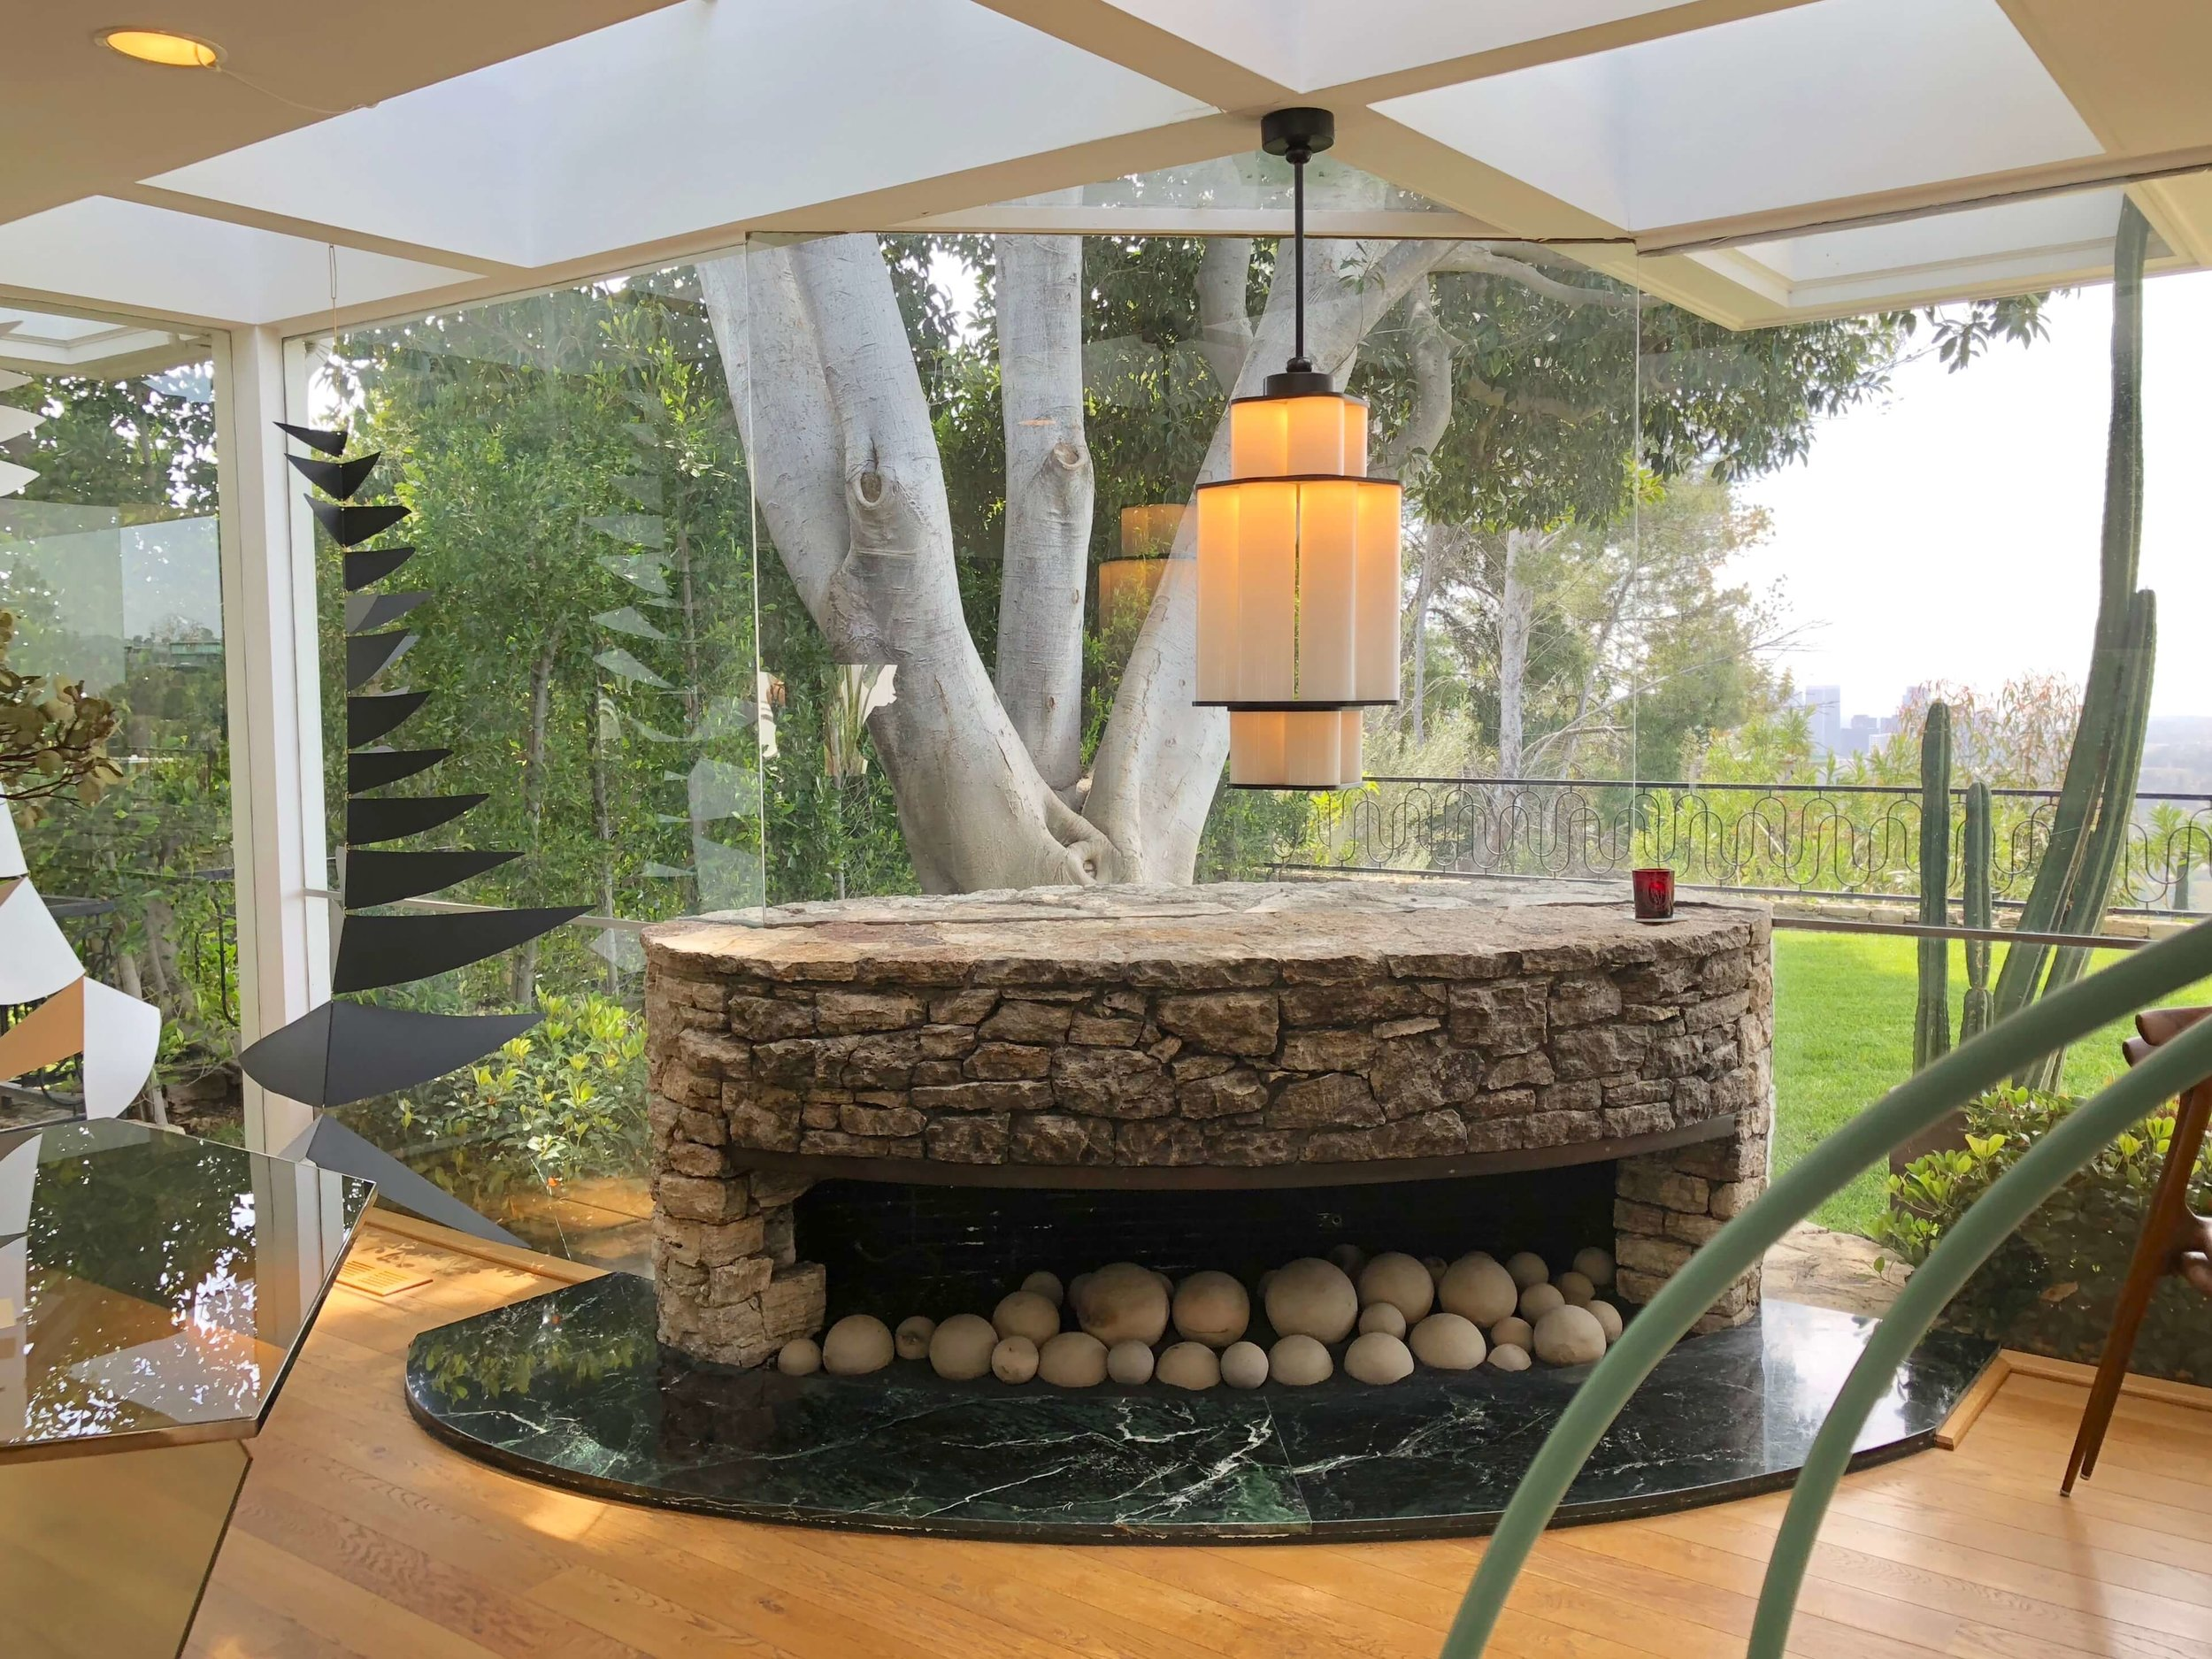 Unusual stone fireplace in oval shape with lighting by Jason Miller at Casa Perfect, Beverly Hills, CA #fireplace #stonefireplace #midcenturymodern